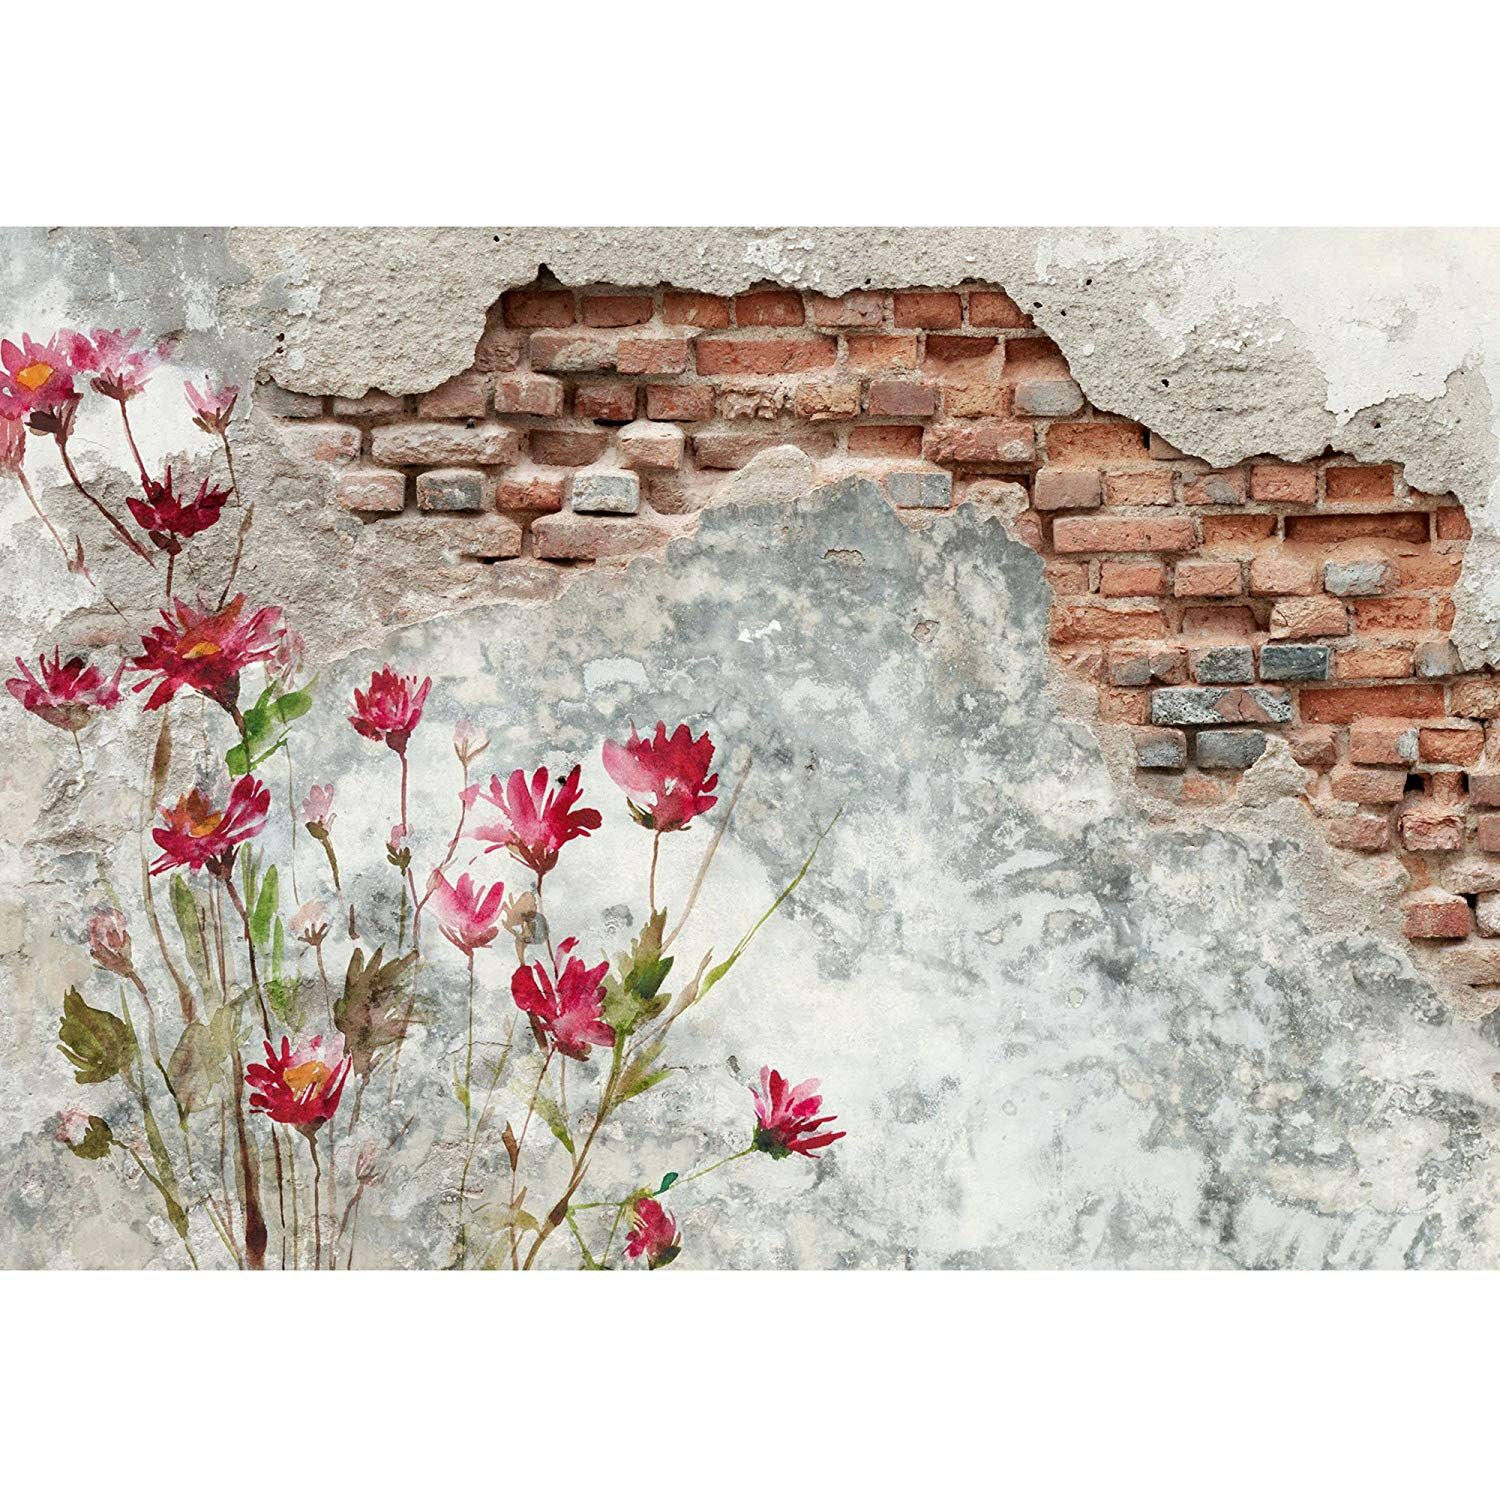 Brick Wall With Flower Painting On It Outdoor Wall Paint Garden Wall Art Painted Brick Walls